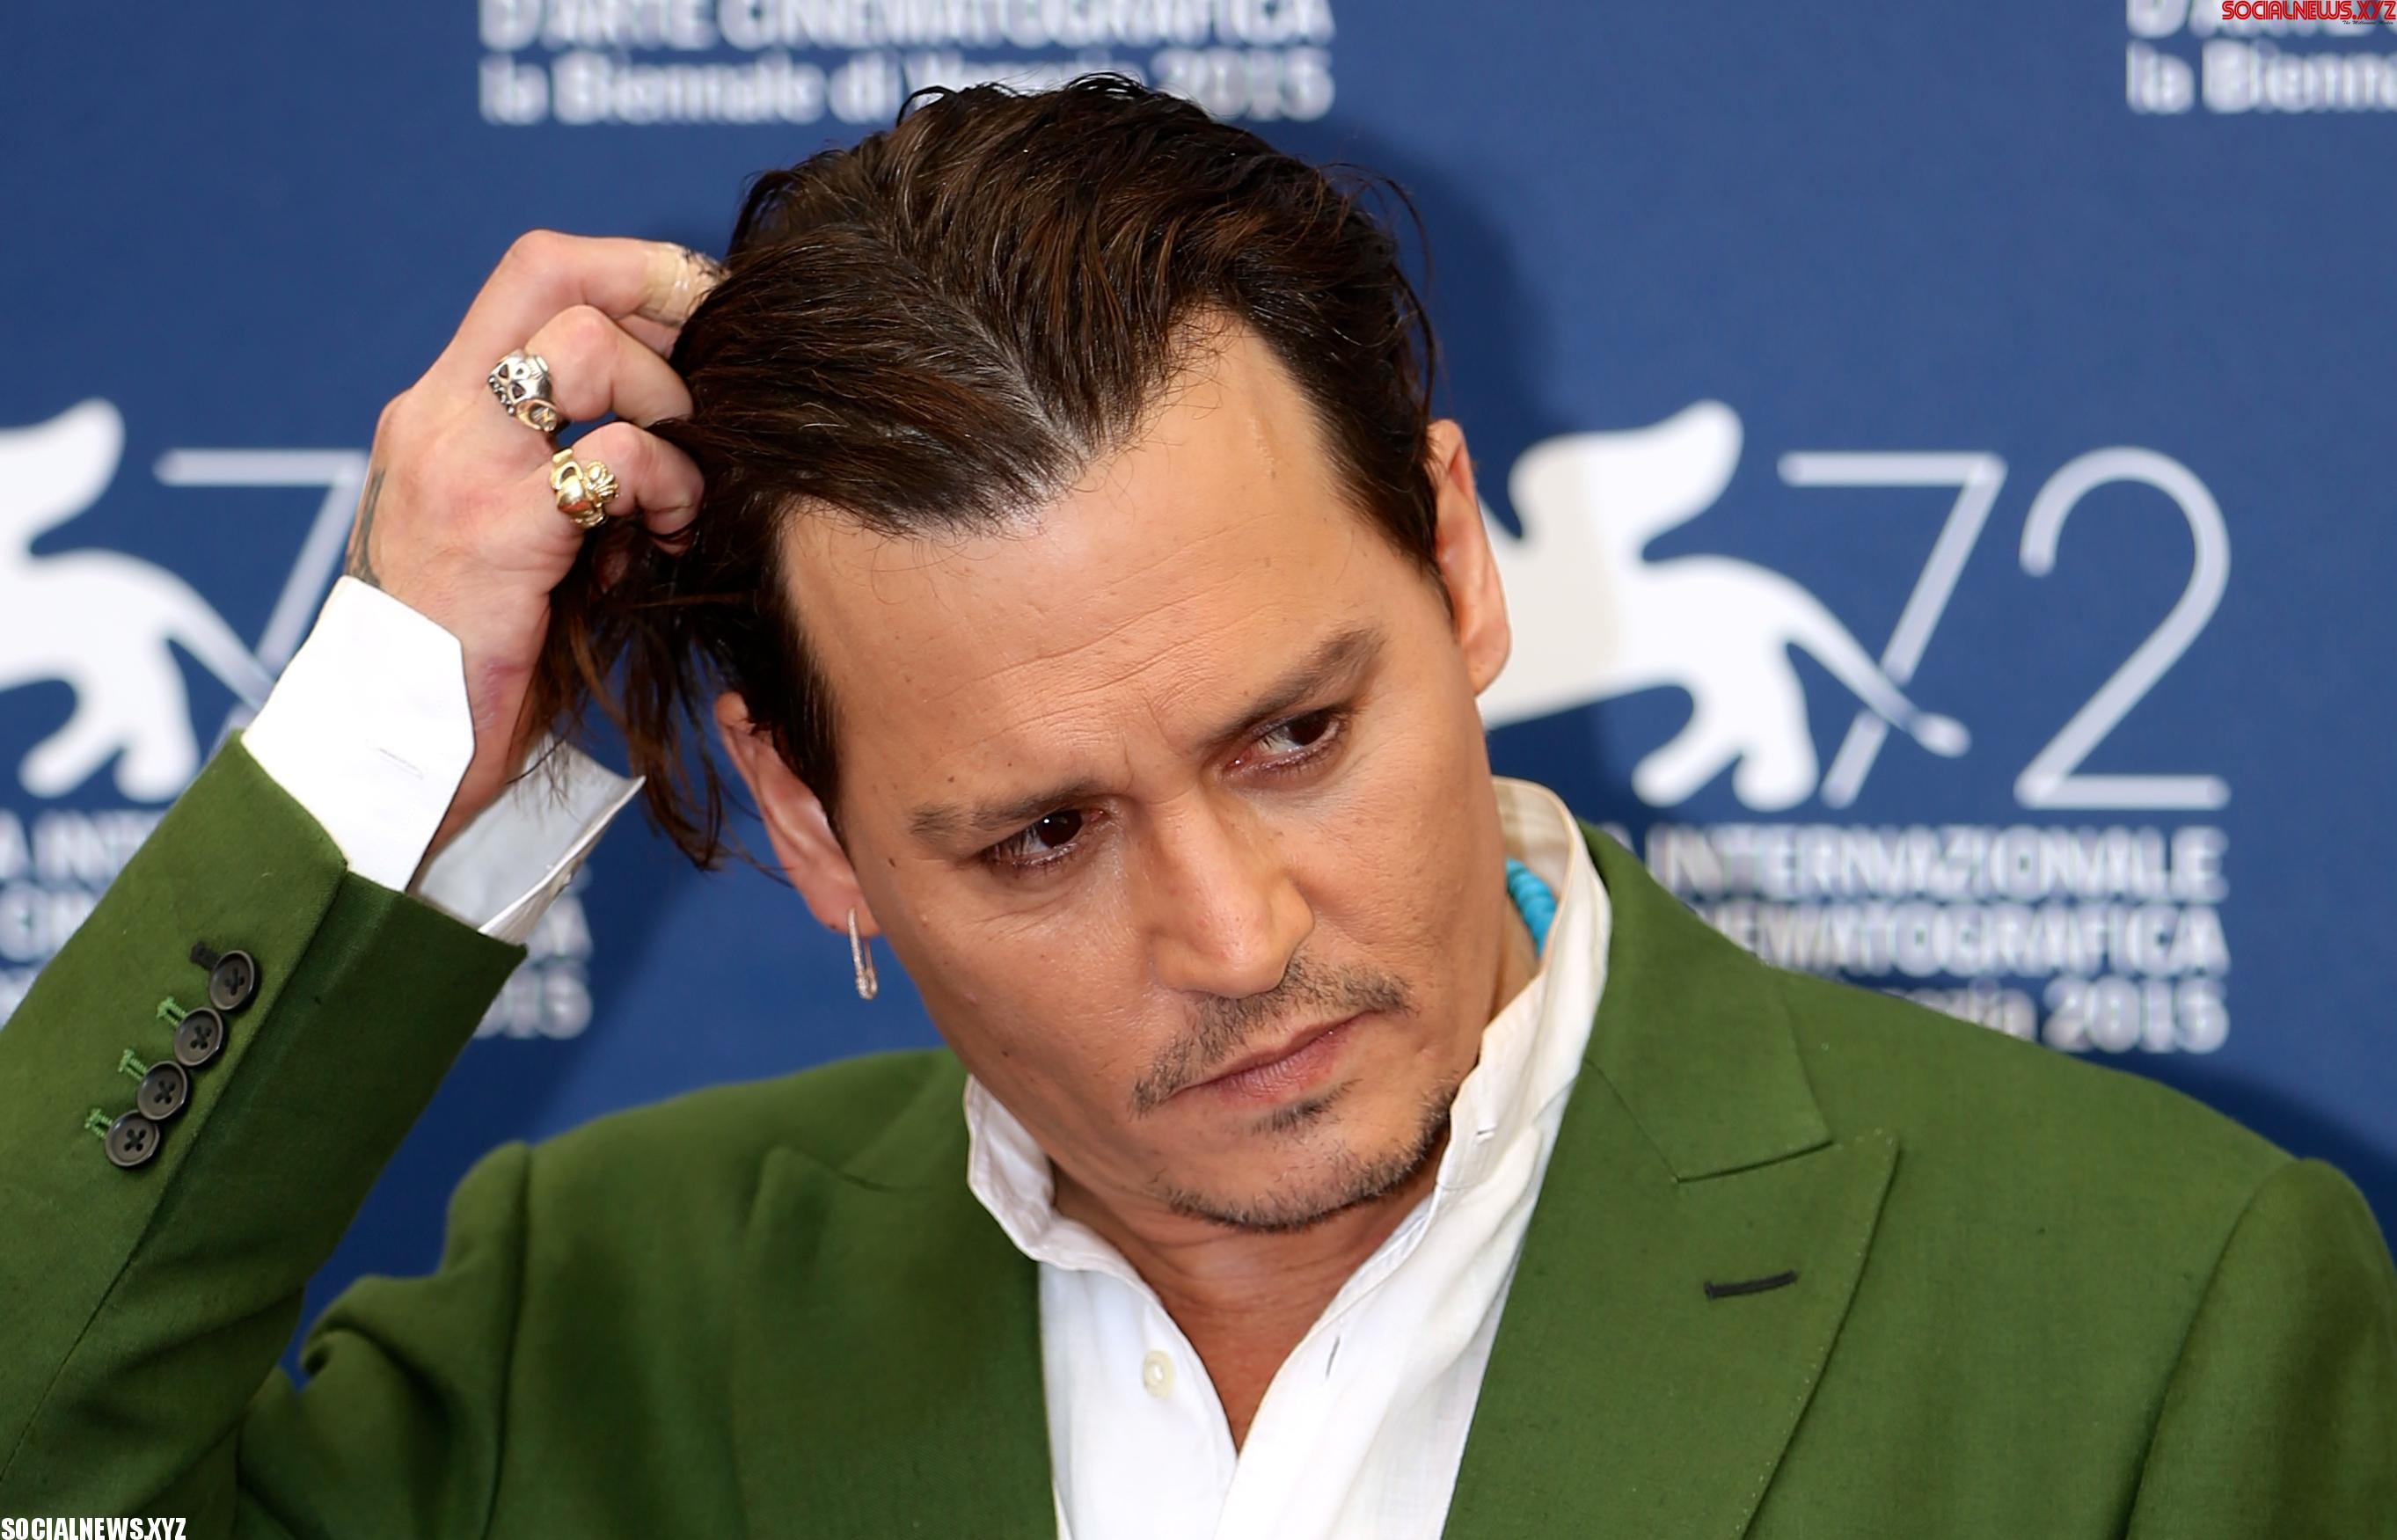 Depp once hooked up with woman in car trunk